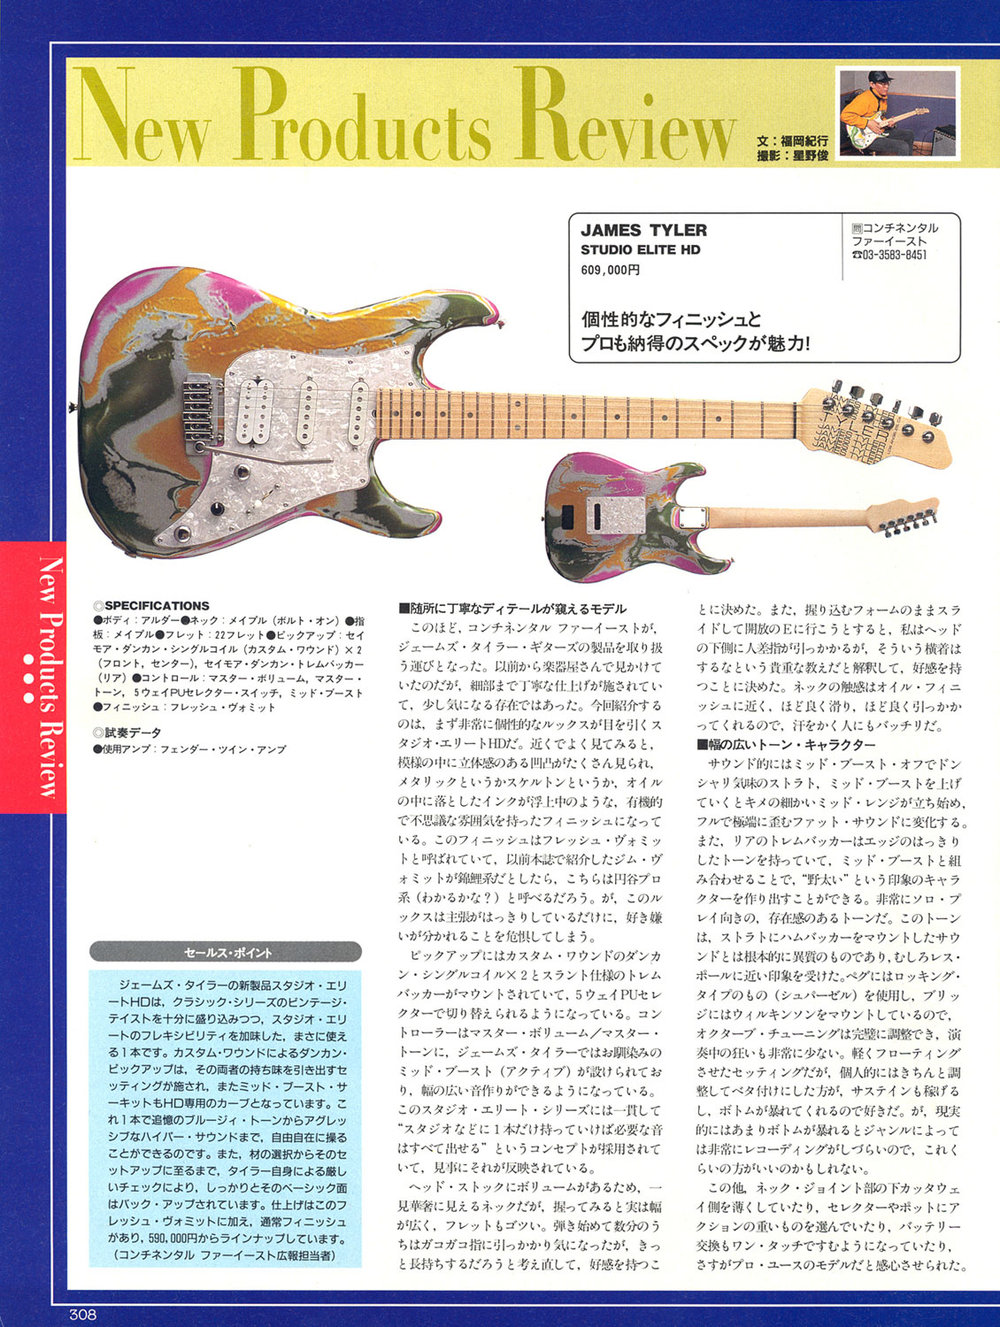 Copy of 1999 Guitar Magazine - Jan.